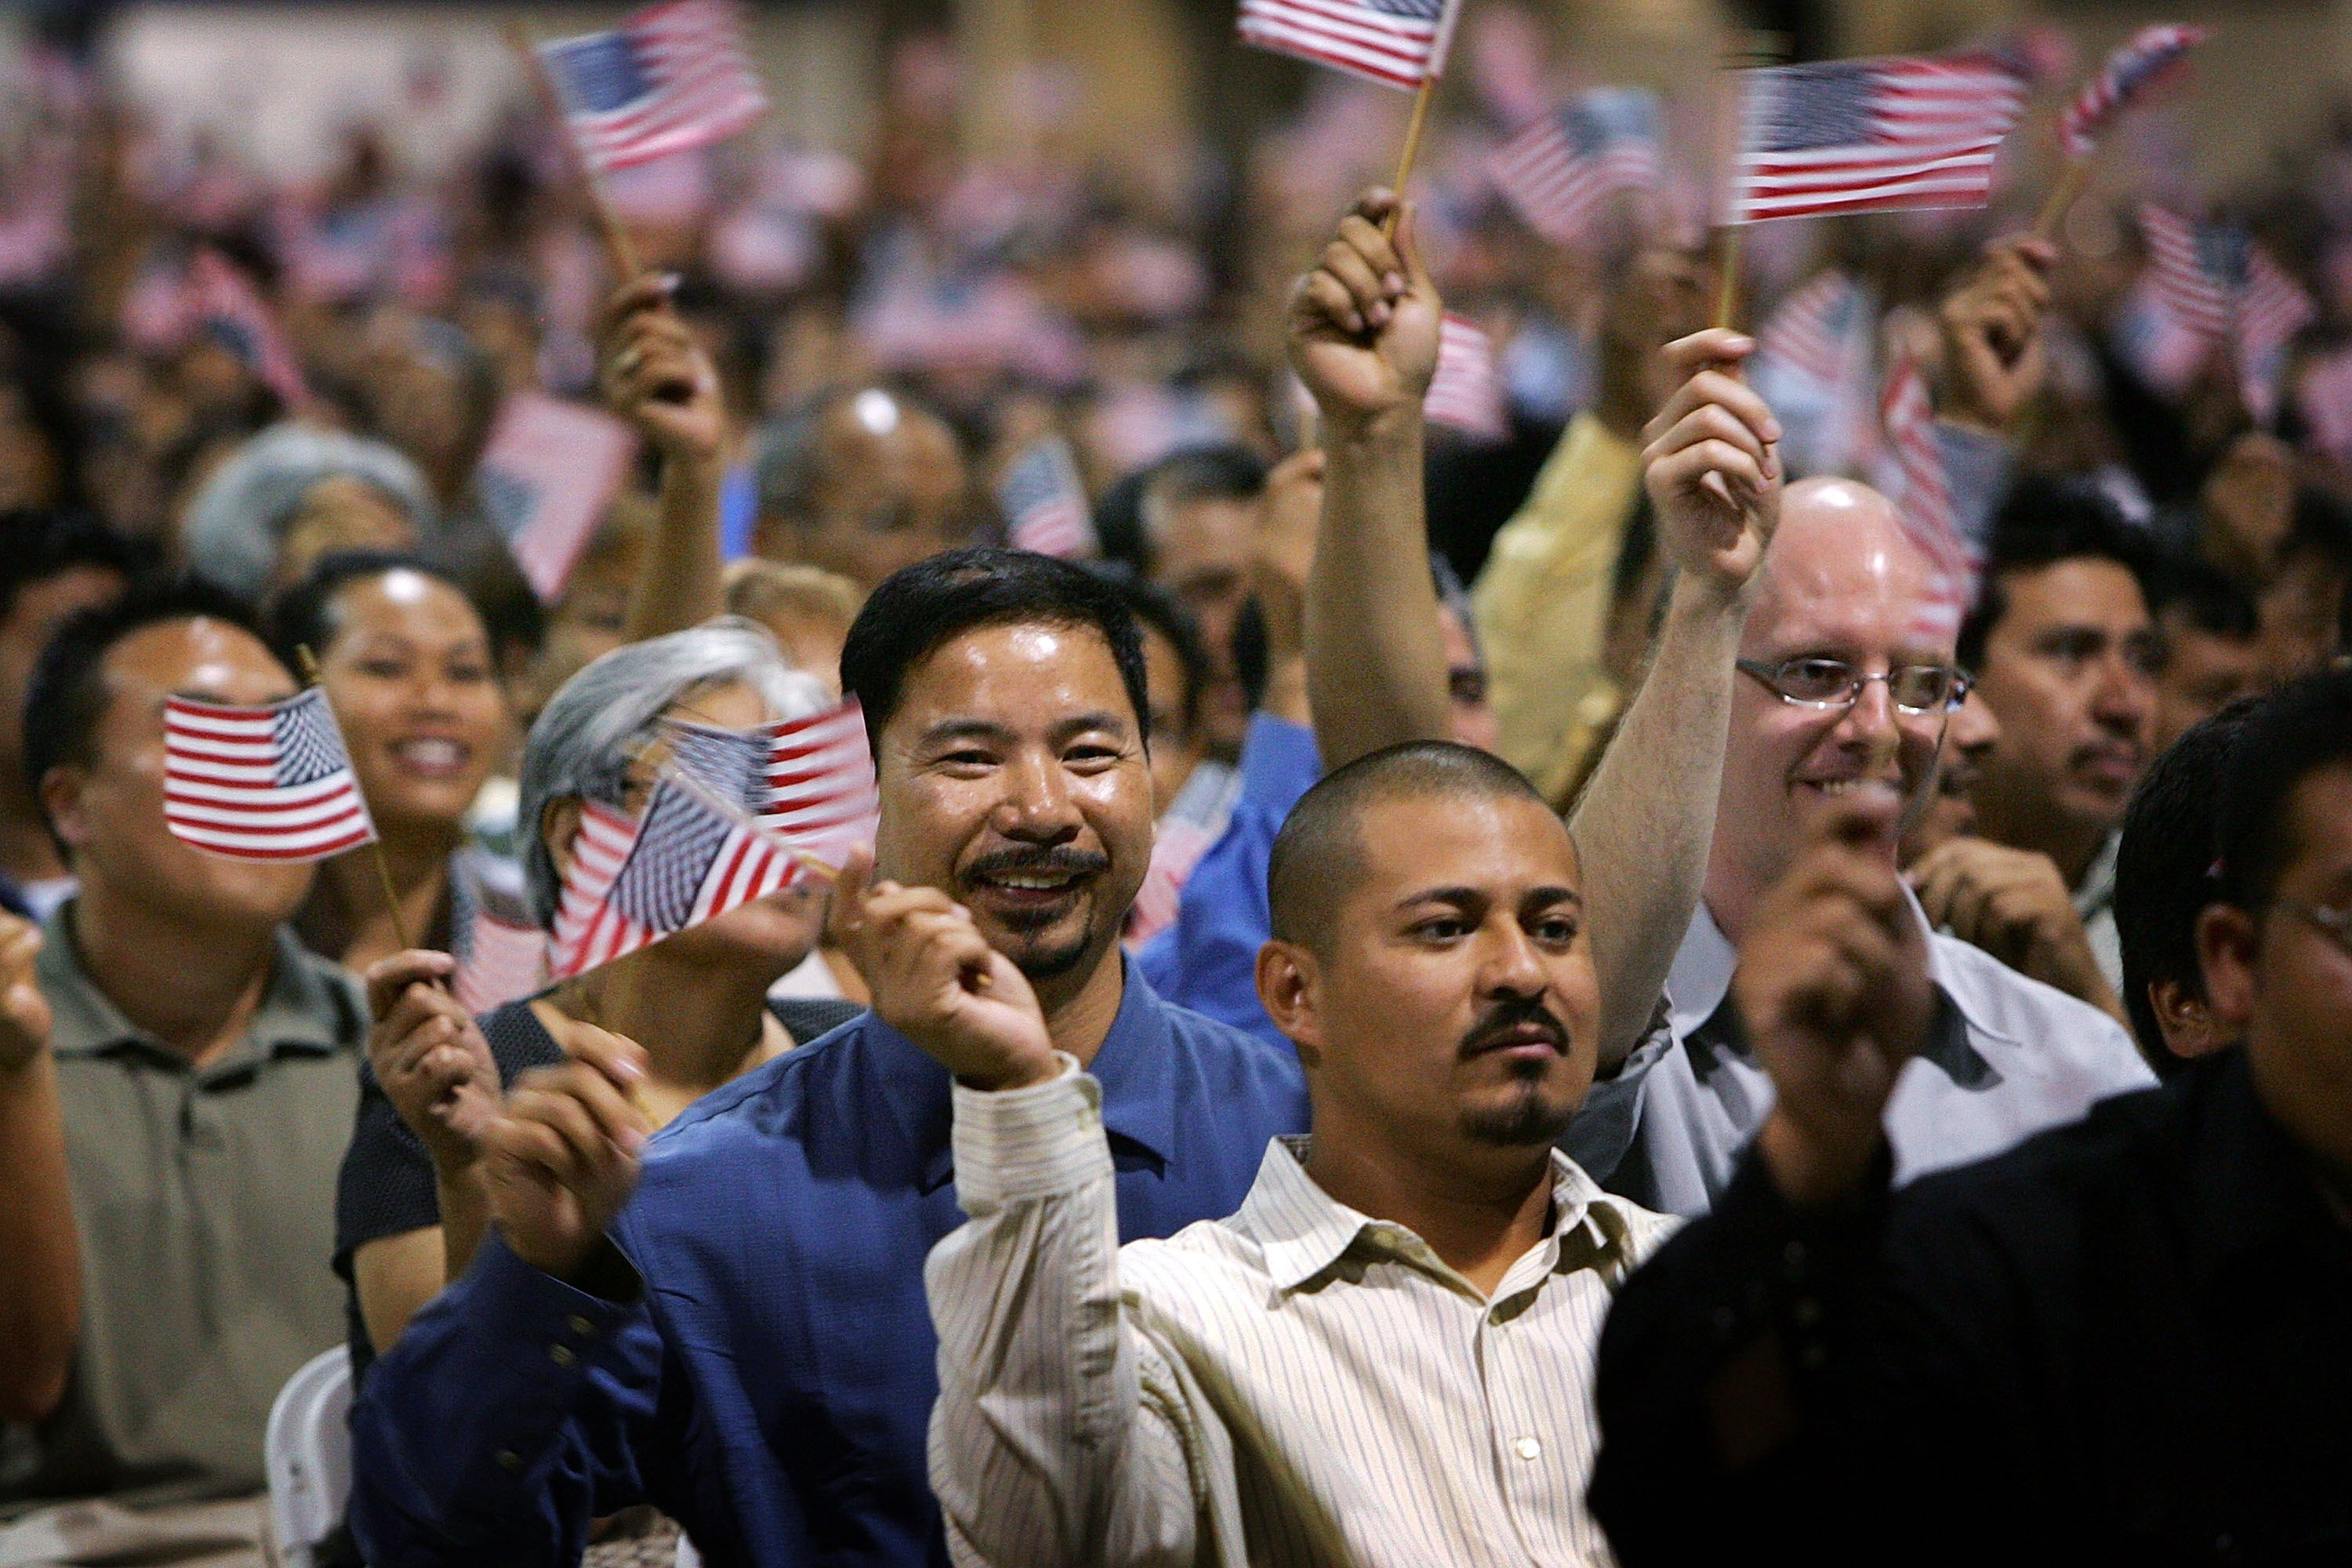 Thousands Become Citizens At Naturalization Ceremony